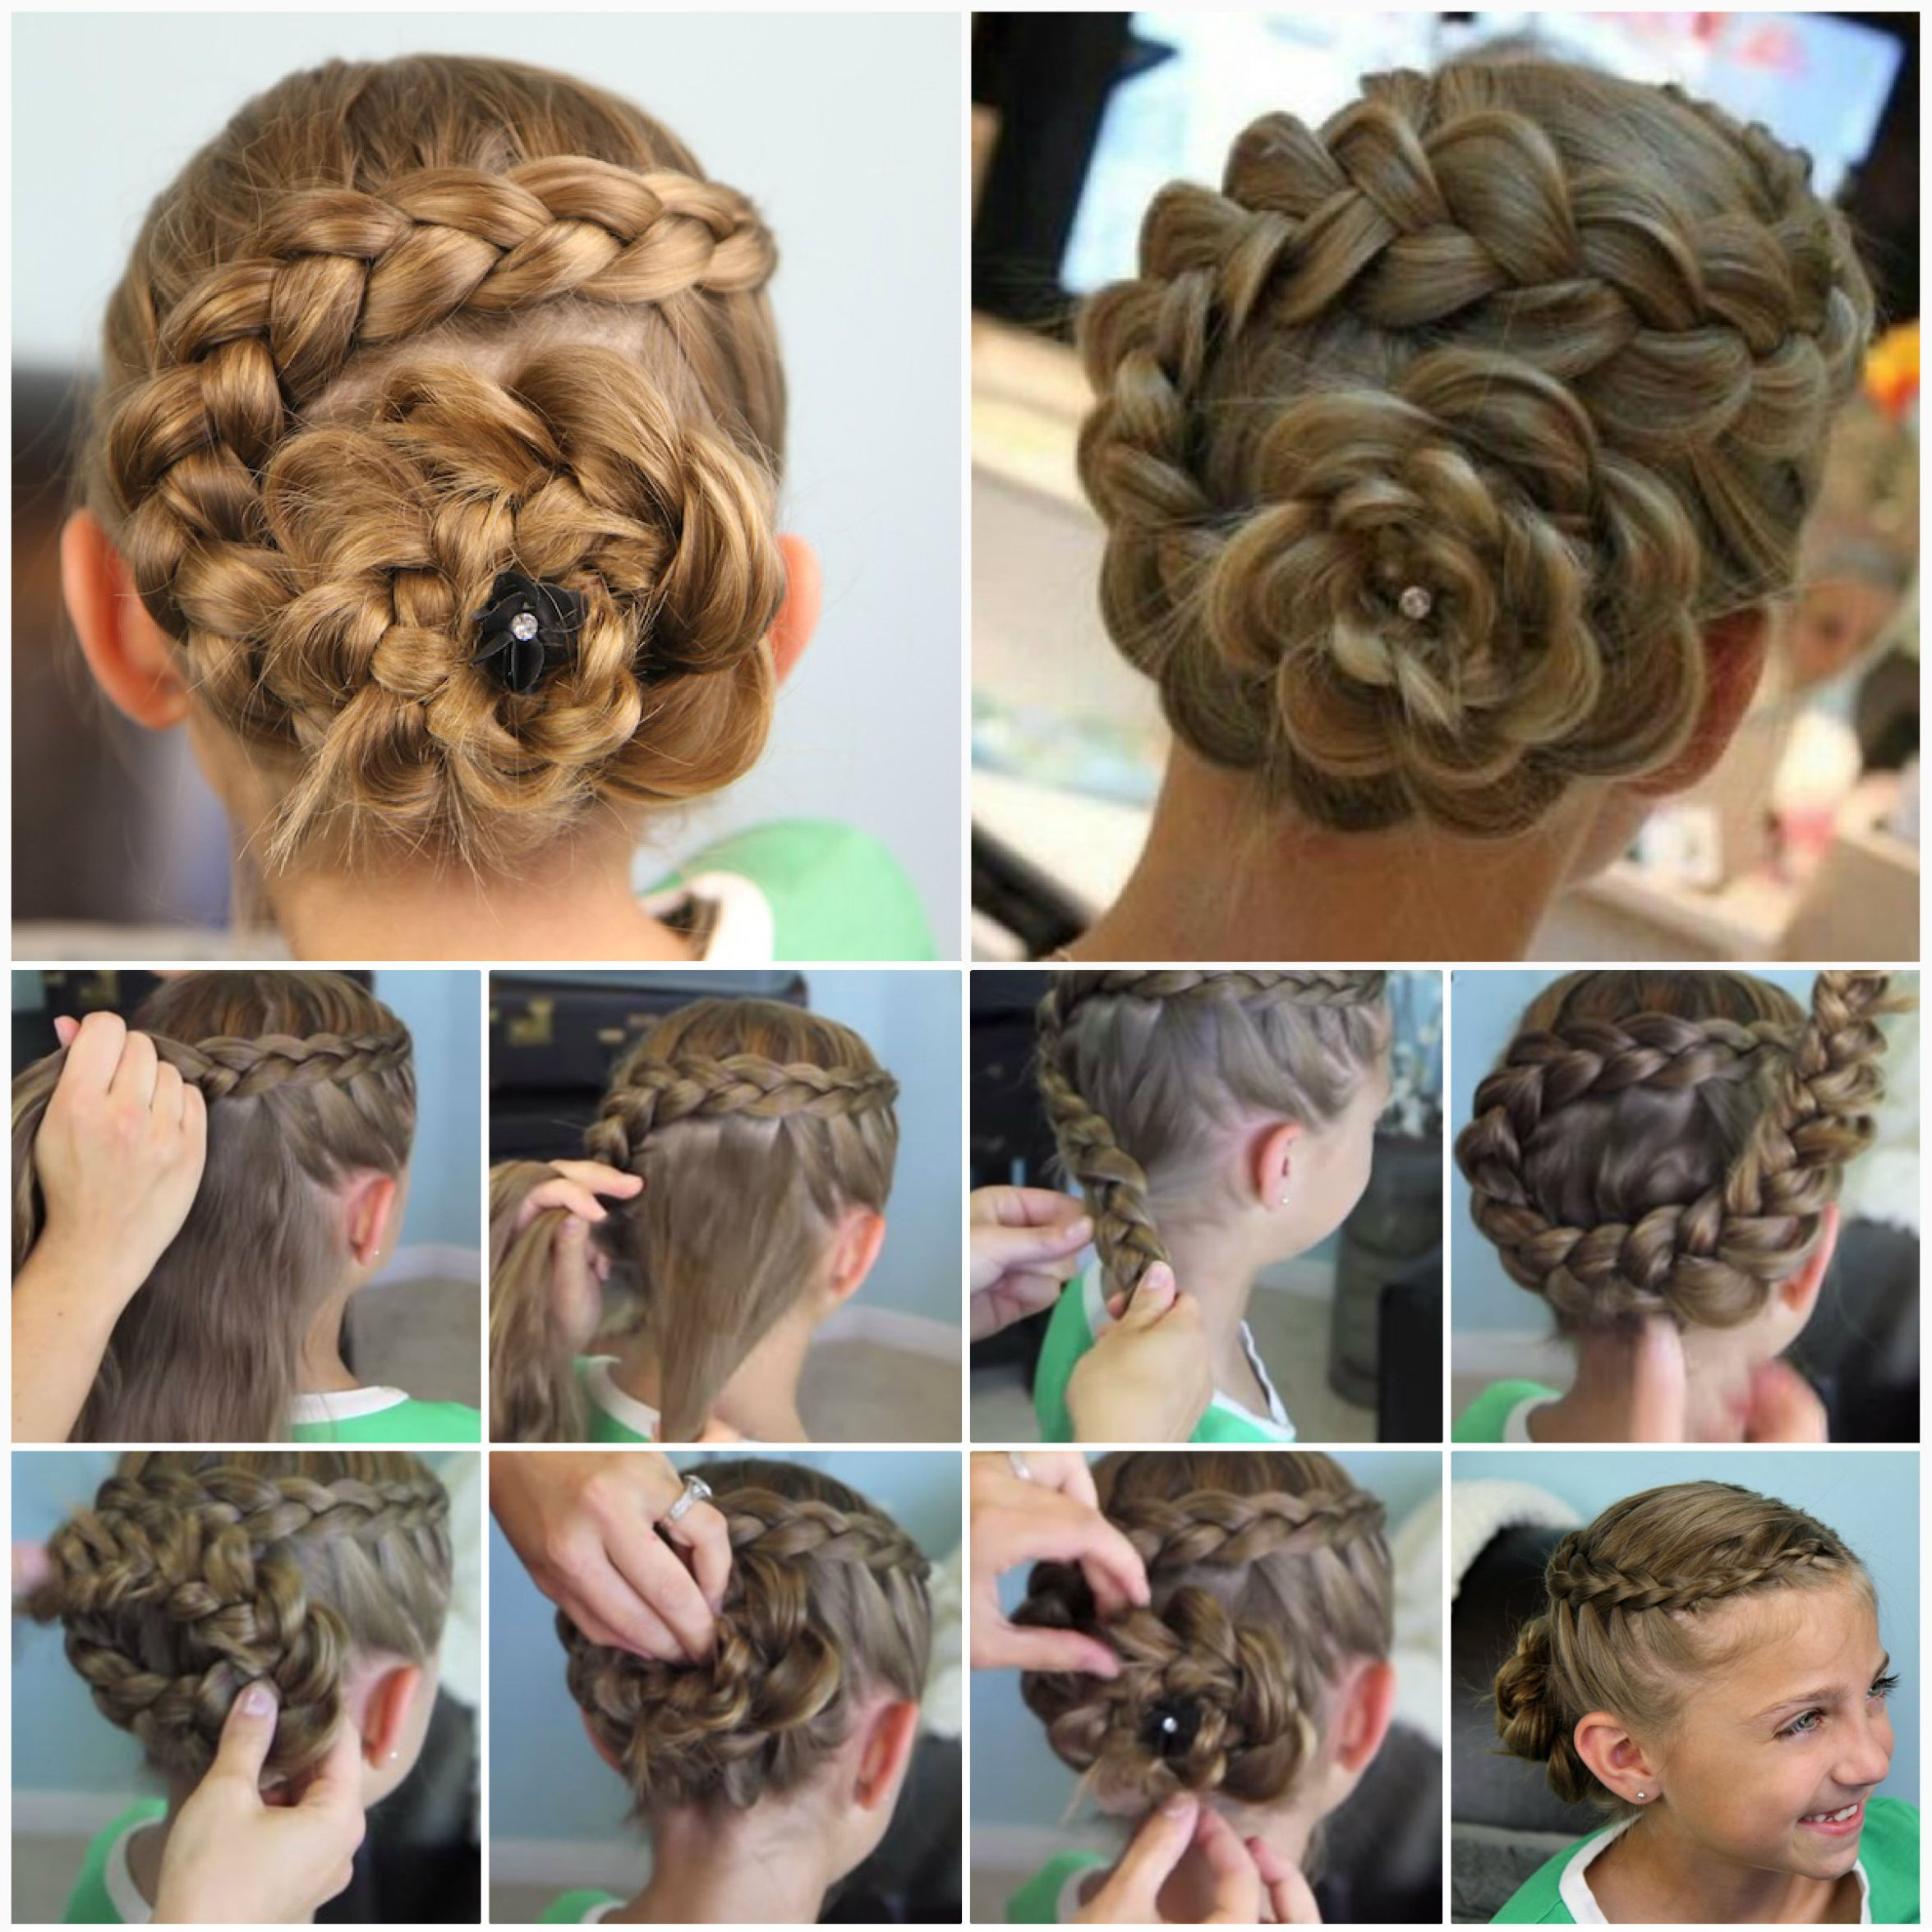 2016 Eid Hairstyles 20 Latest Girls Hairstyles For Eid Cheap Casual Dress Fashion Tips For Men Or Women